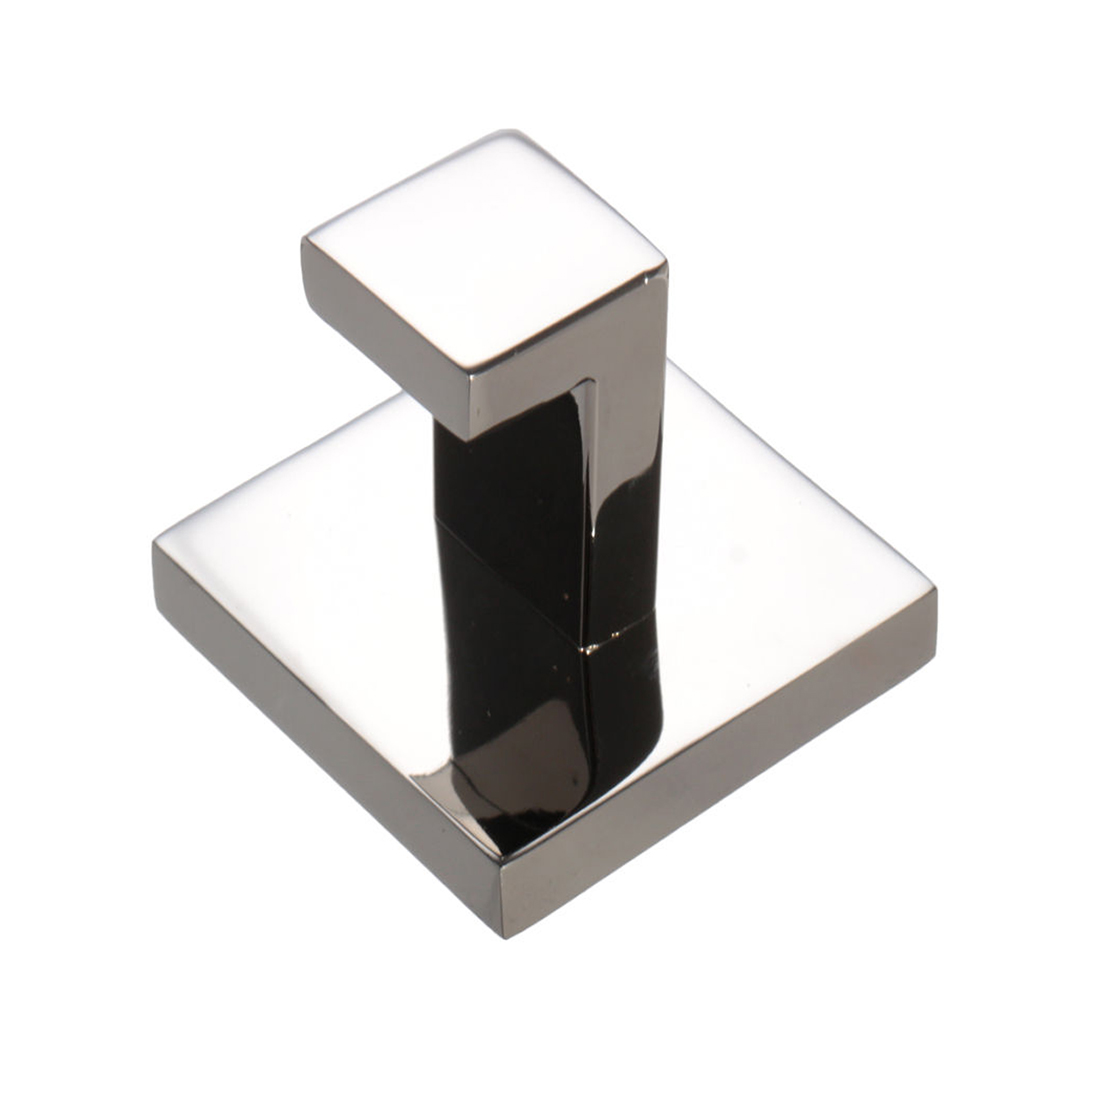 304 Stainless Square Mirror Polish Towel Robe Holder Hook